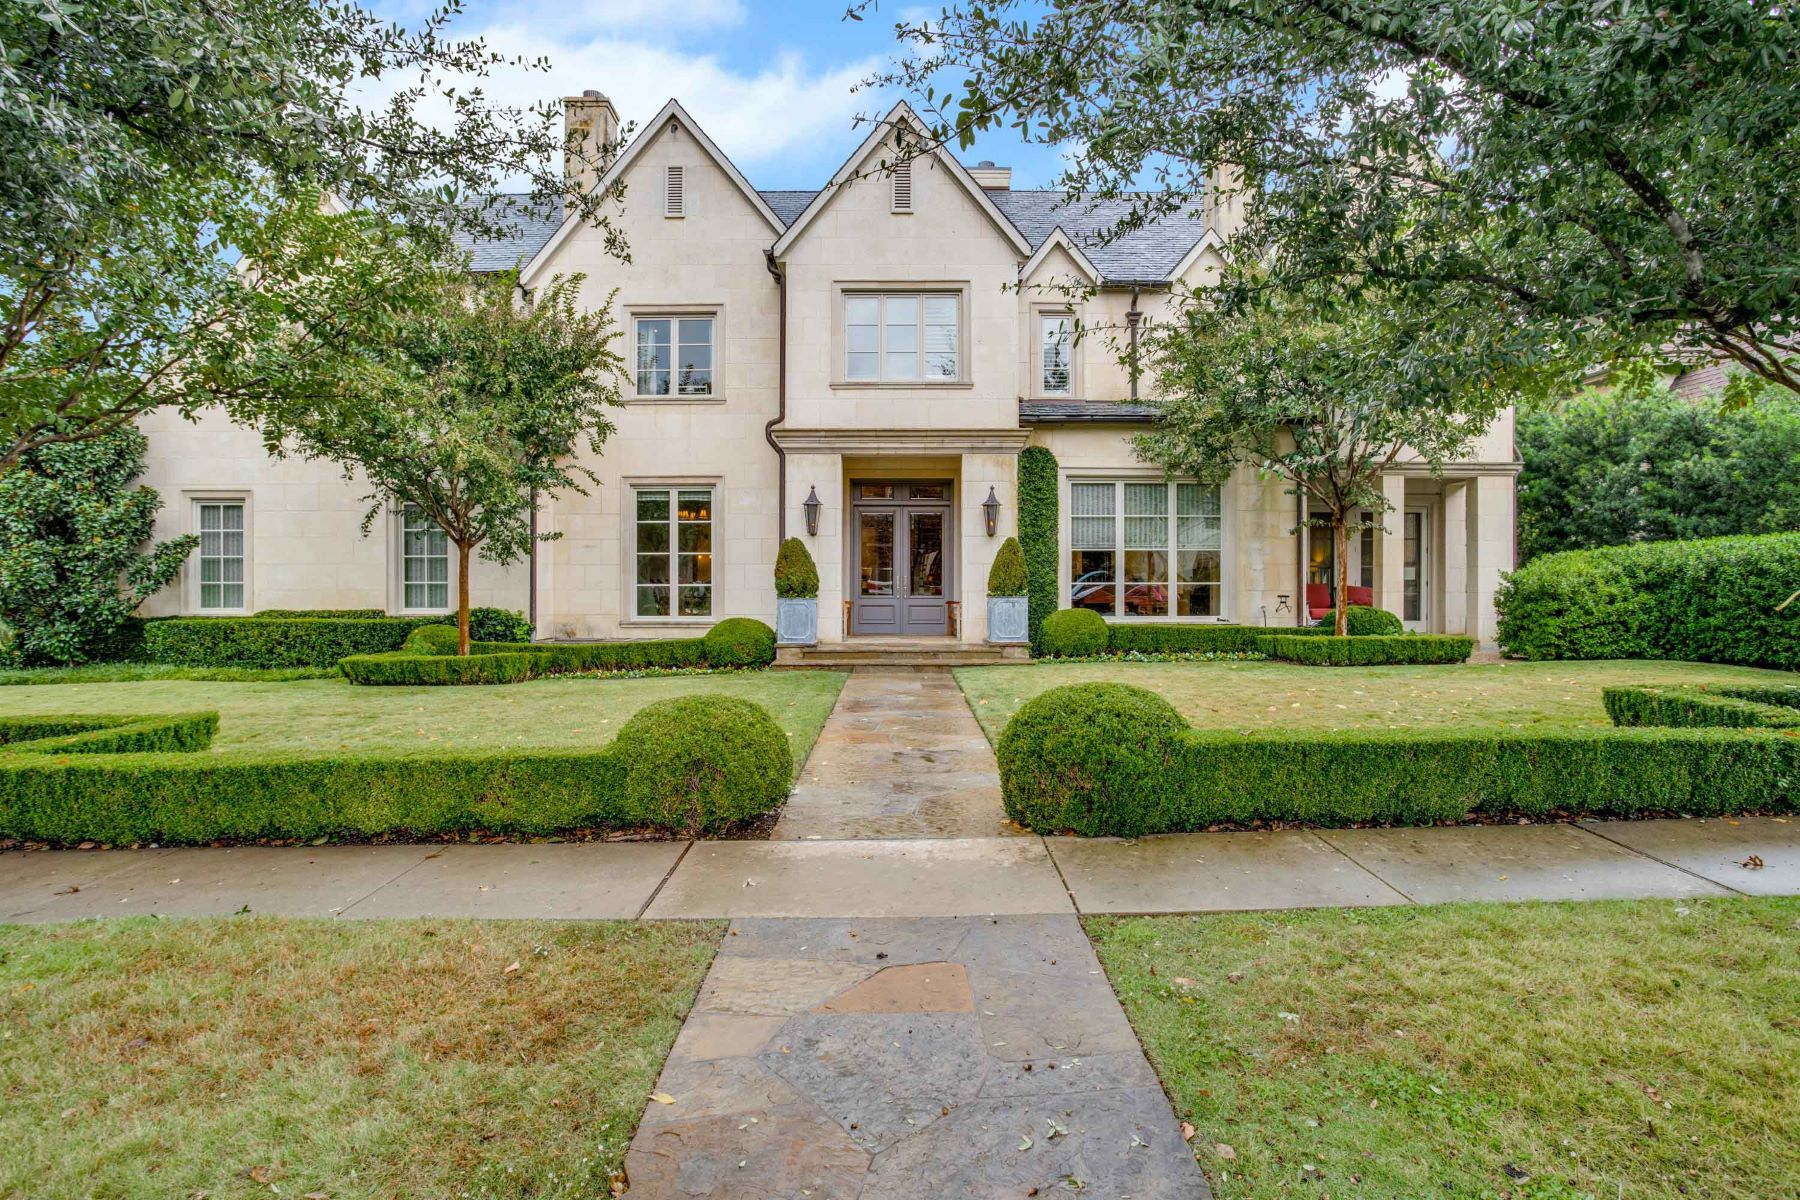 Single Family Homes for Sale at 6700 Golf Drive University Park, Texas 75205 United States